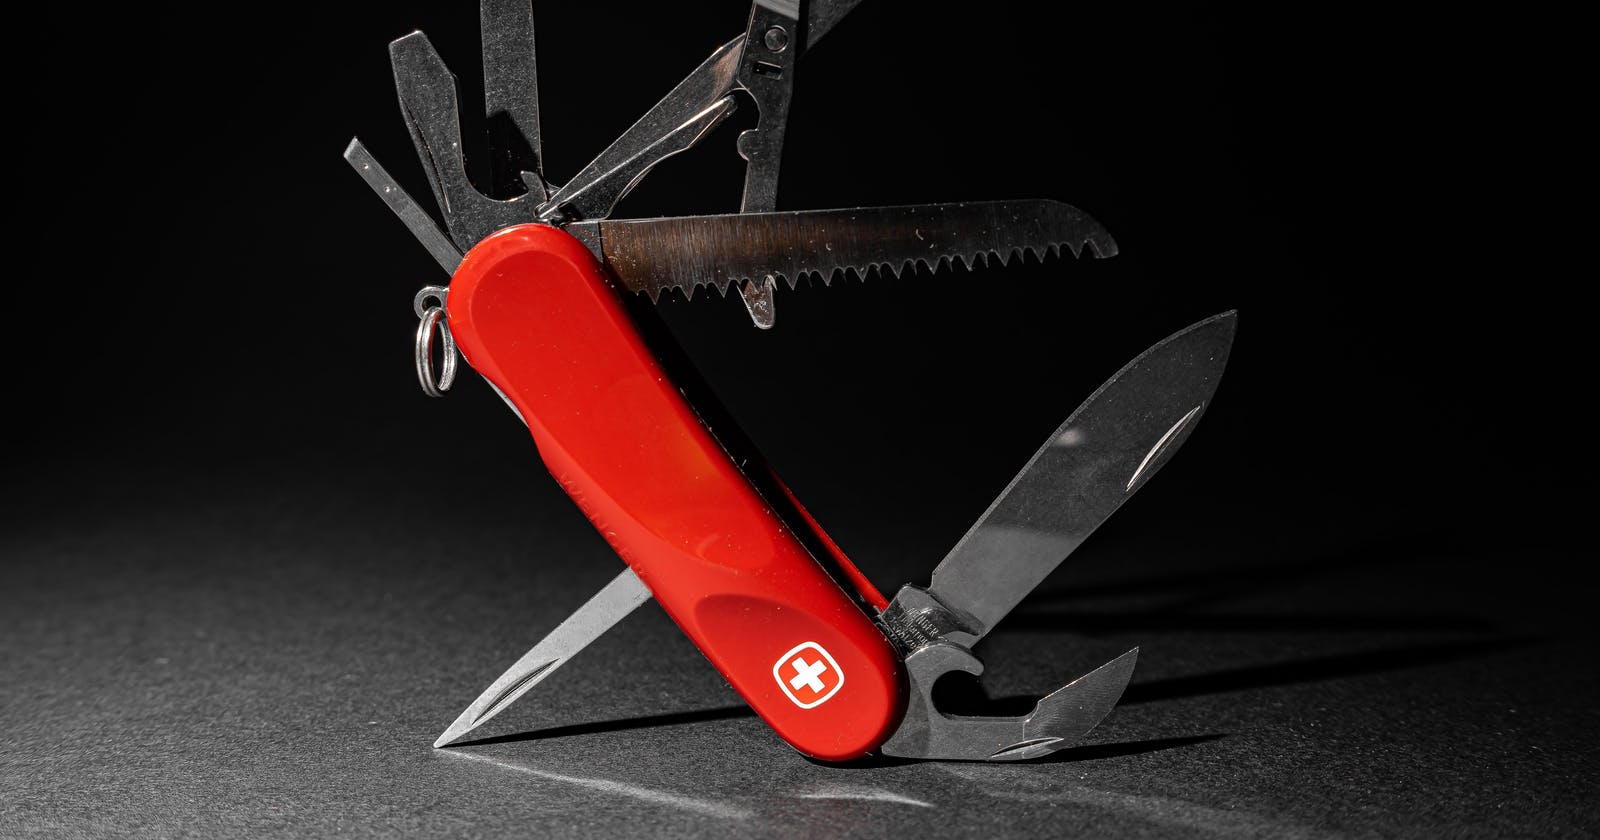 Building my personal Swiss Army Knife services